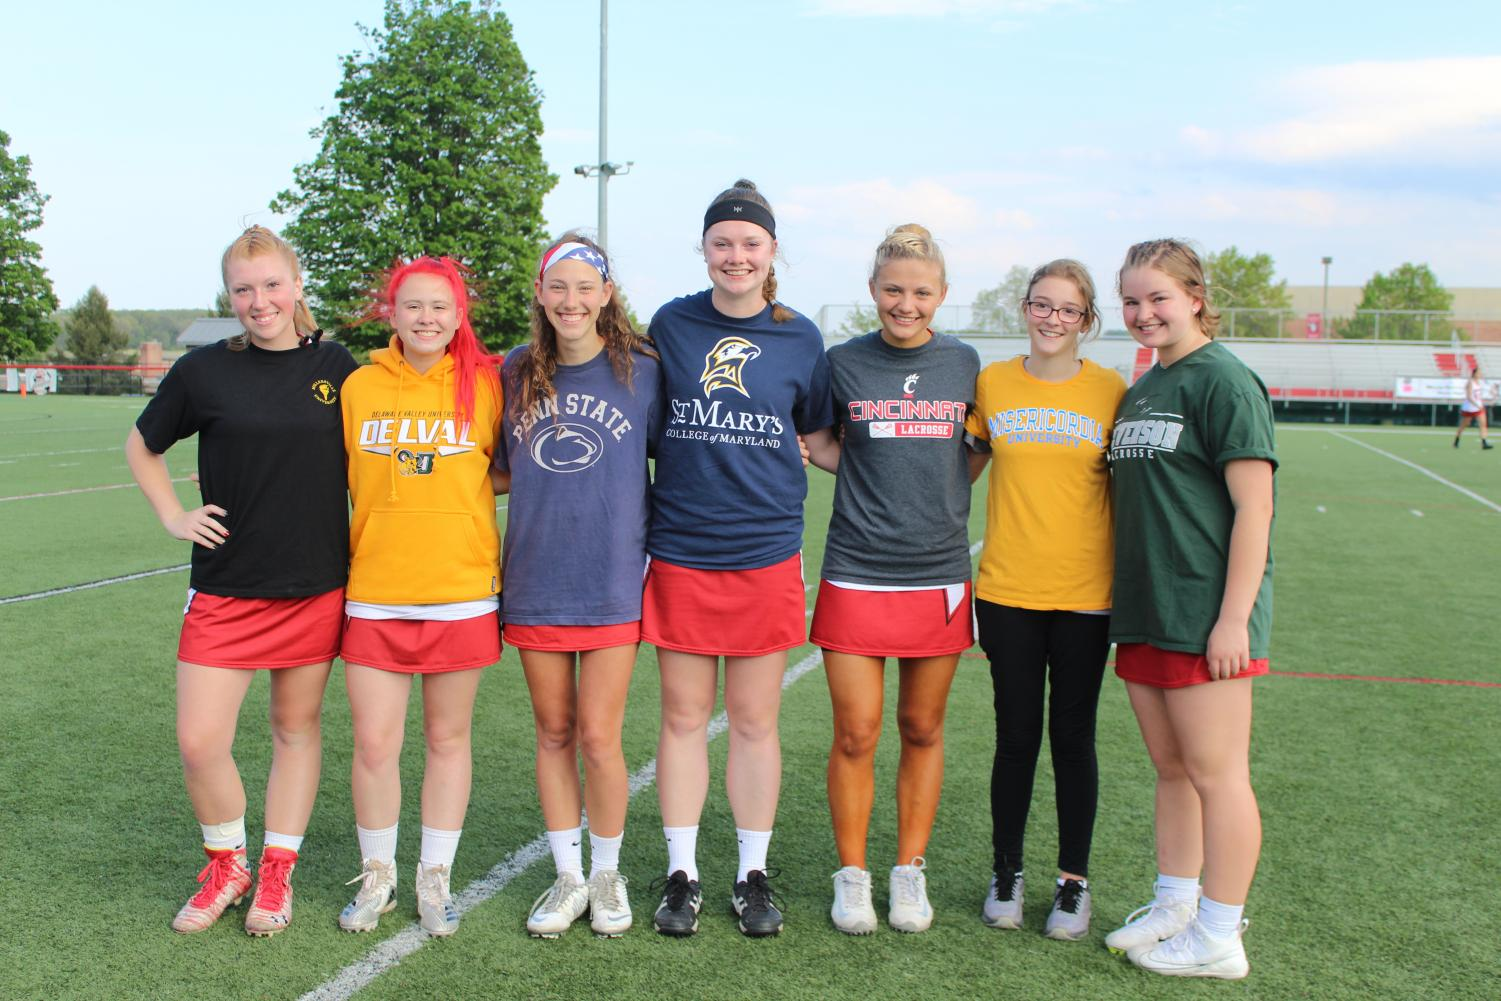 All+seven+seniors+on+the+girls+lacrosse+team+stand+posing+for+a+picture.+Each+girl+wore+a+peice+of+clothing+representing+their+future+college+they+will+be+attending.%0APhotograph+by+Stephanie+Graffin.+